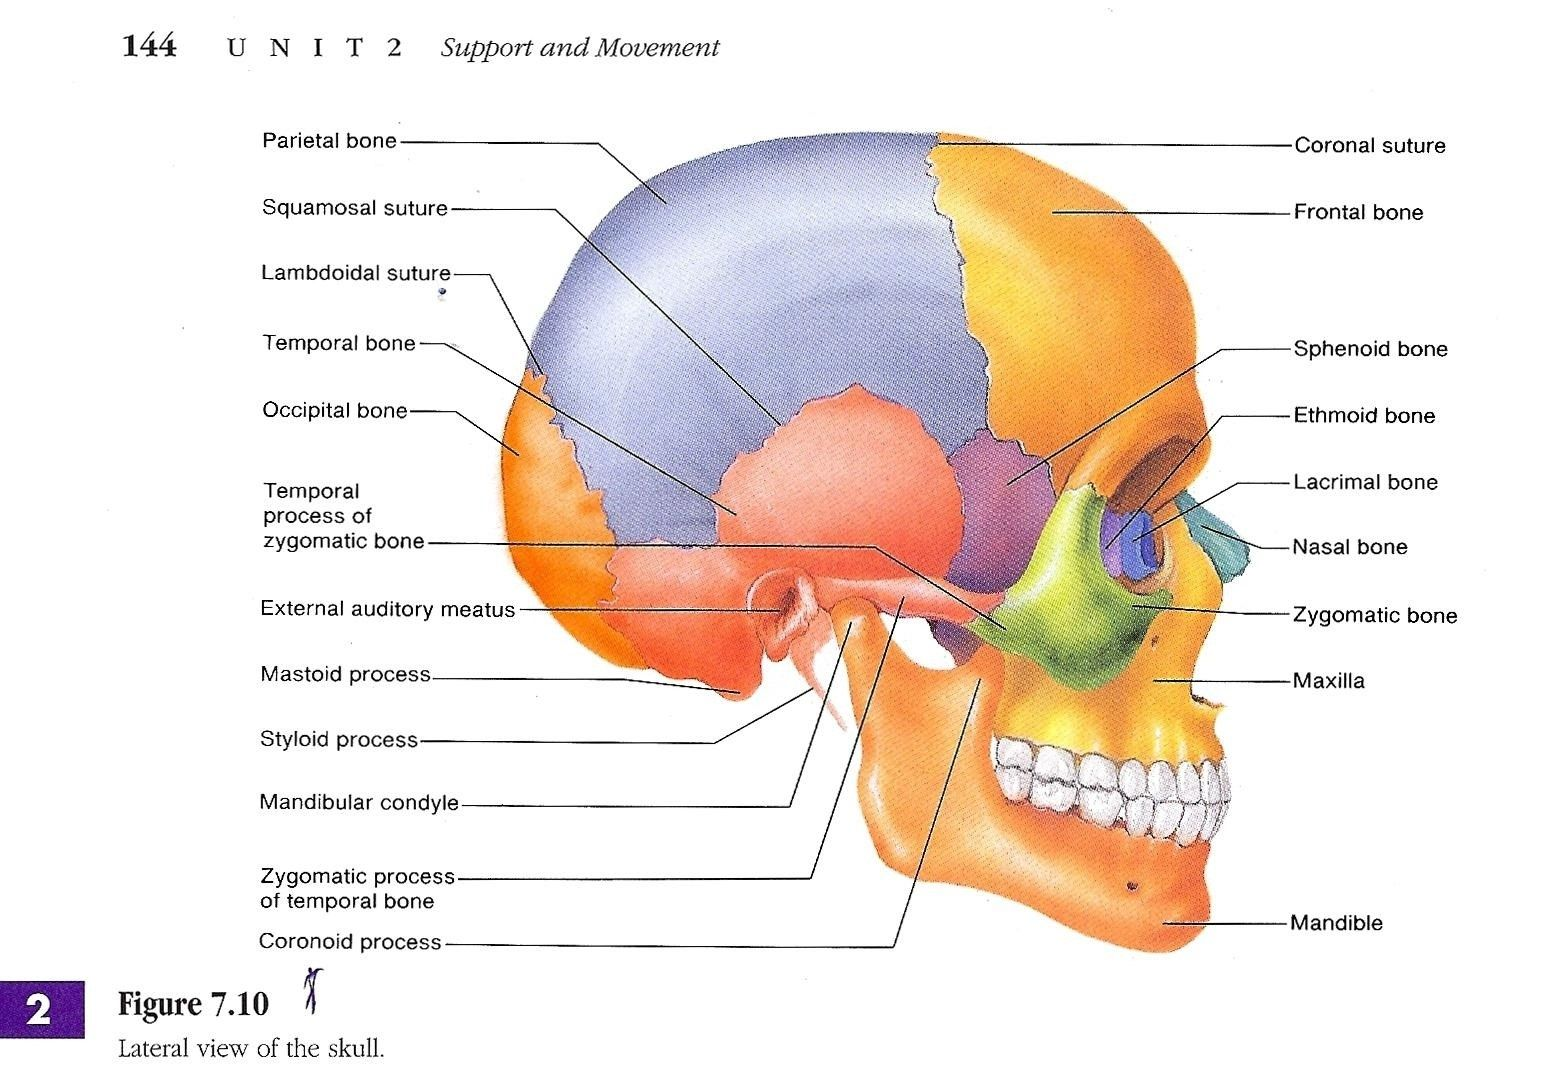 ethmoid bone diagram 4 way switch wiring diagrams human anatomy drawing skull photos labeling exercises